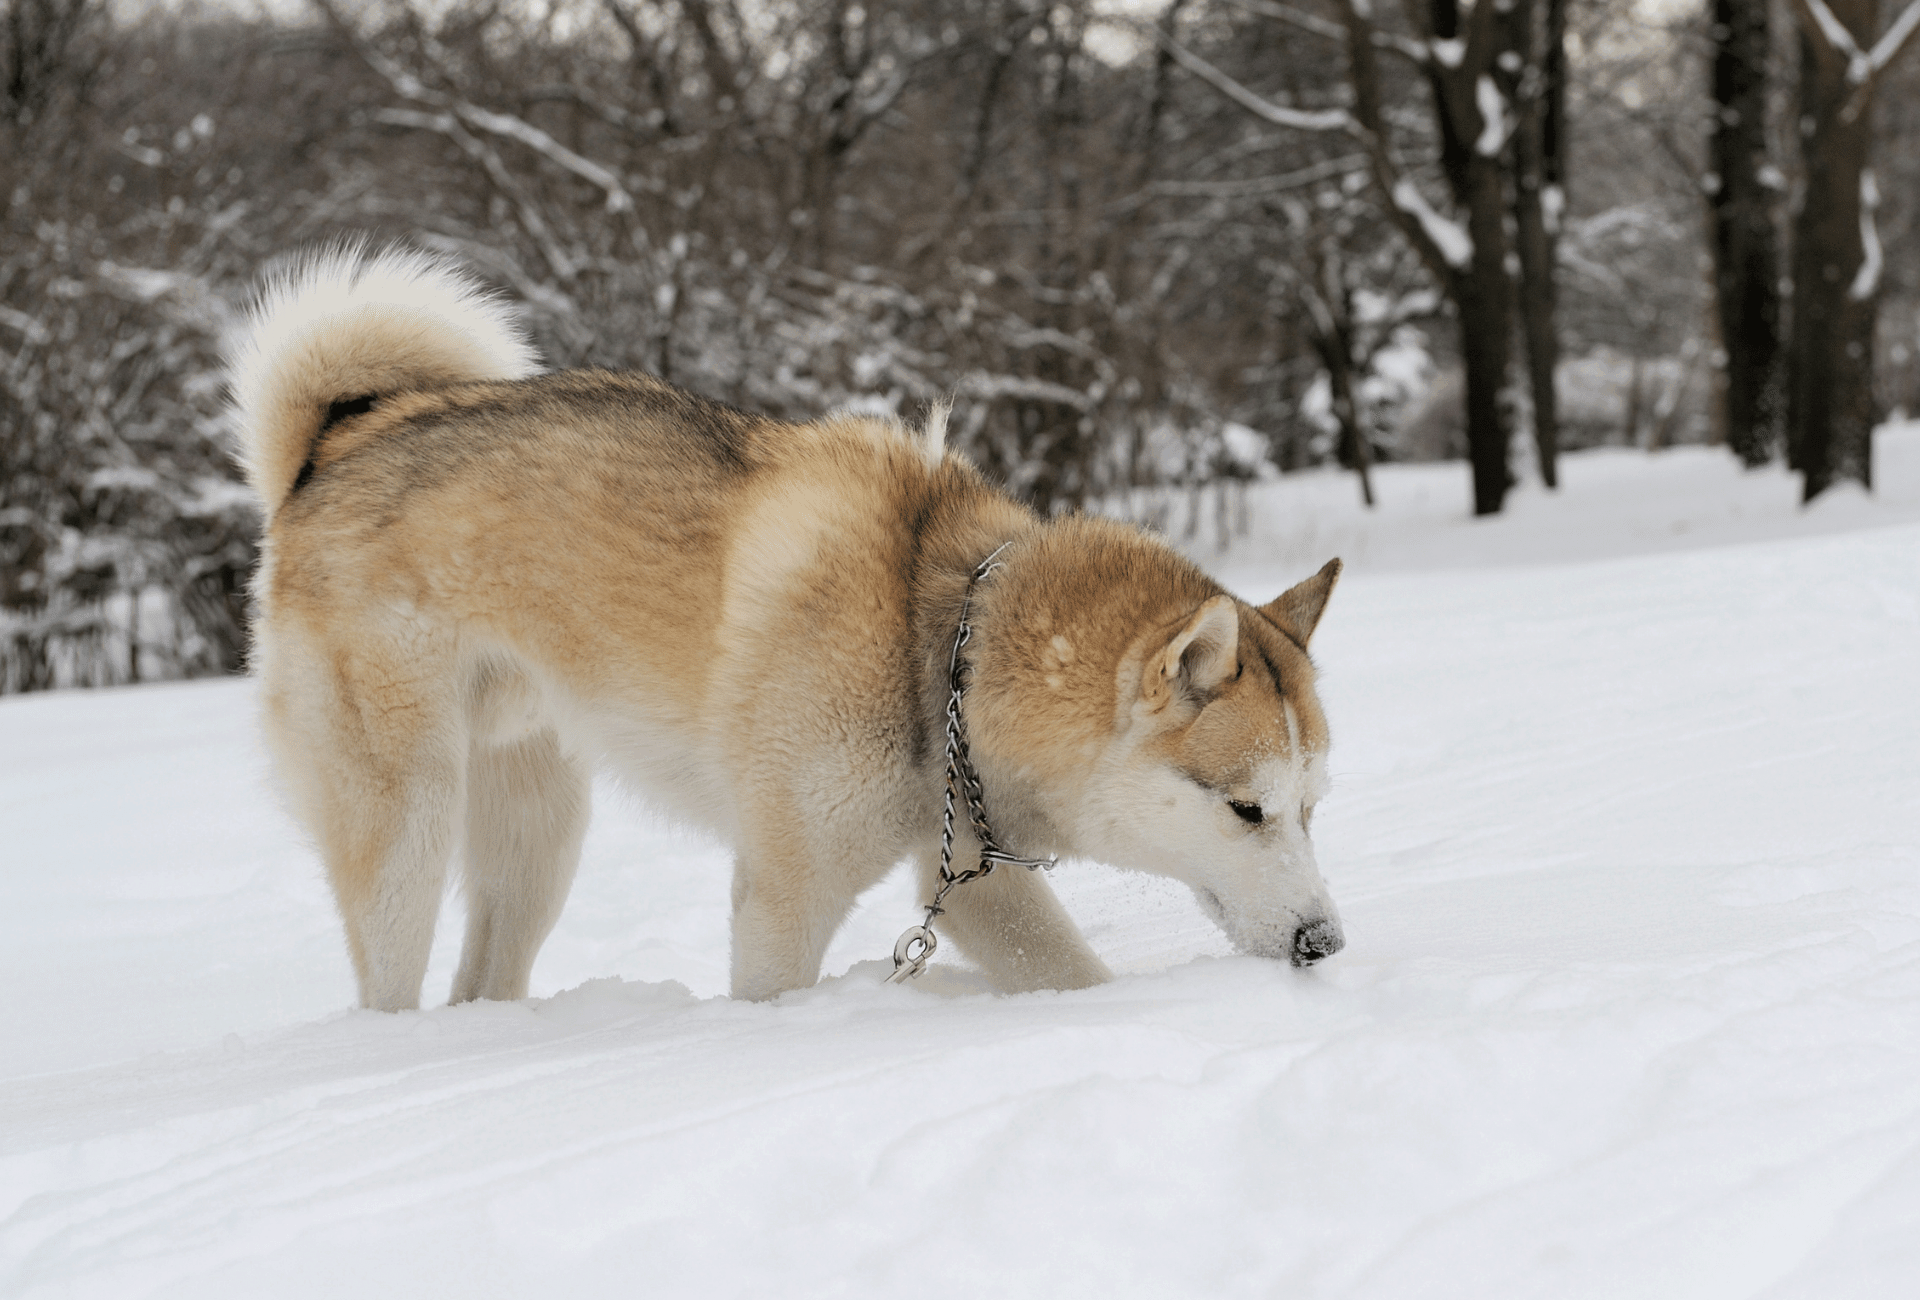 Sable Husky with a reddish undercoat and grey tips walking in the snow.